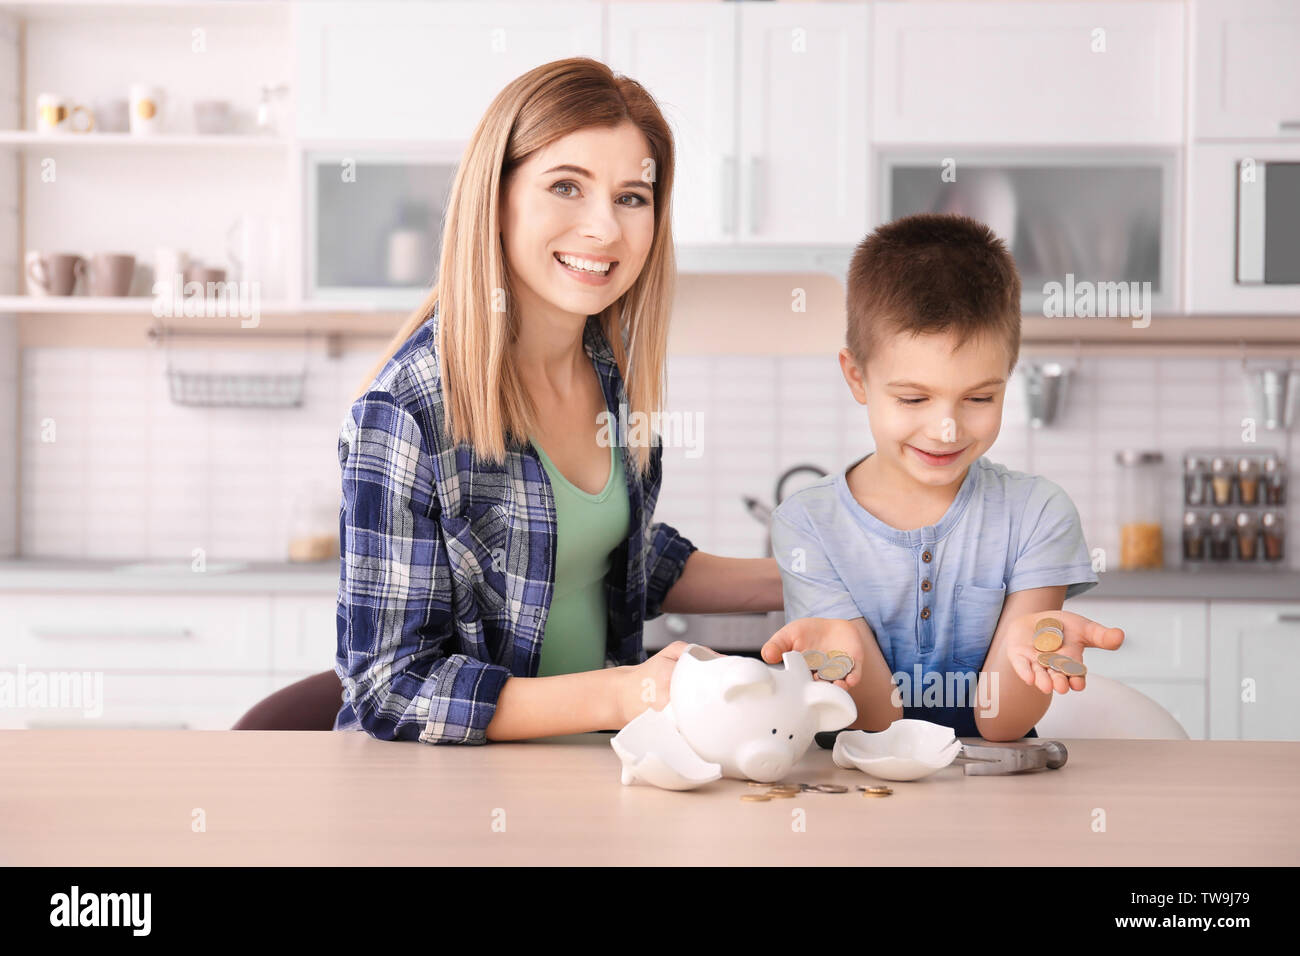 Mother and little son with broken piggy bank on table at home - Stock Image